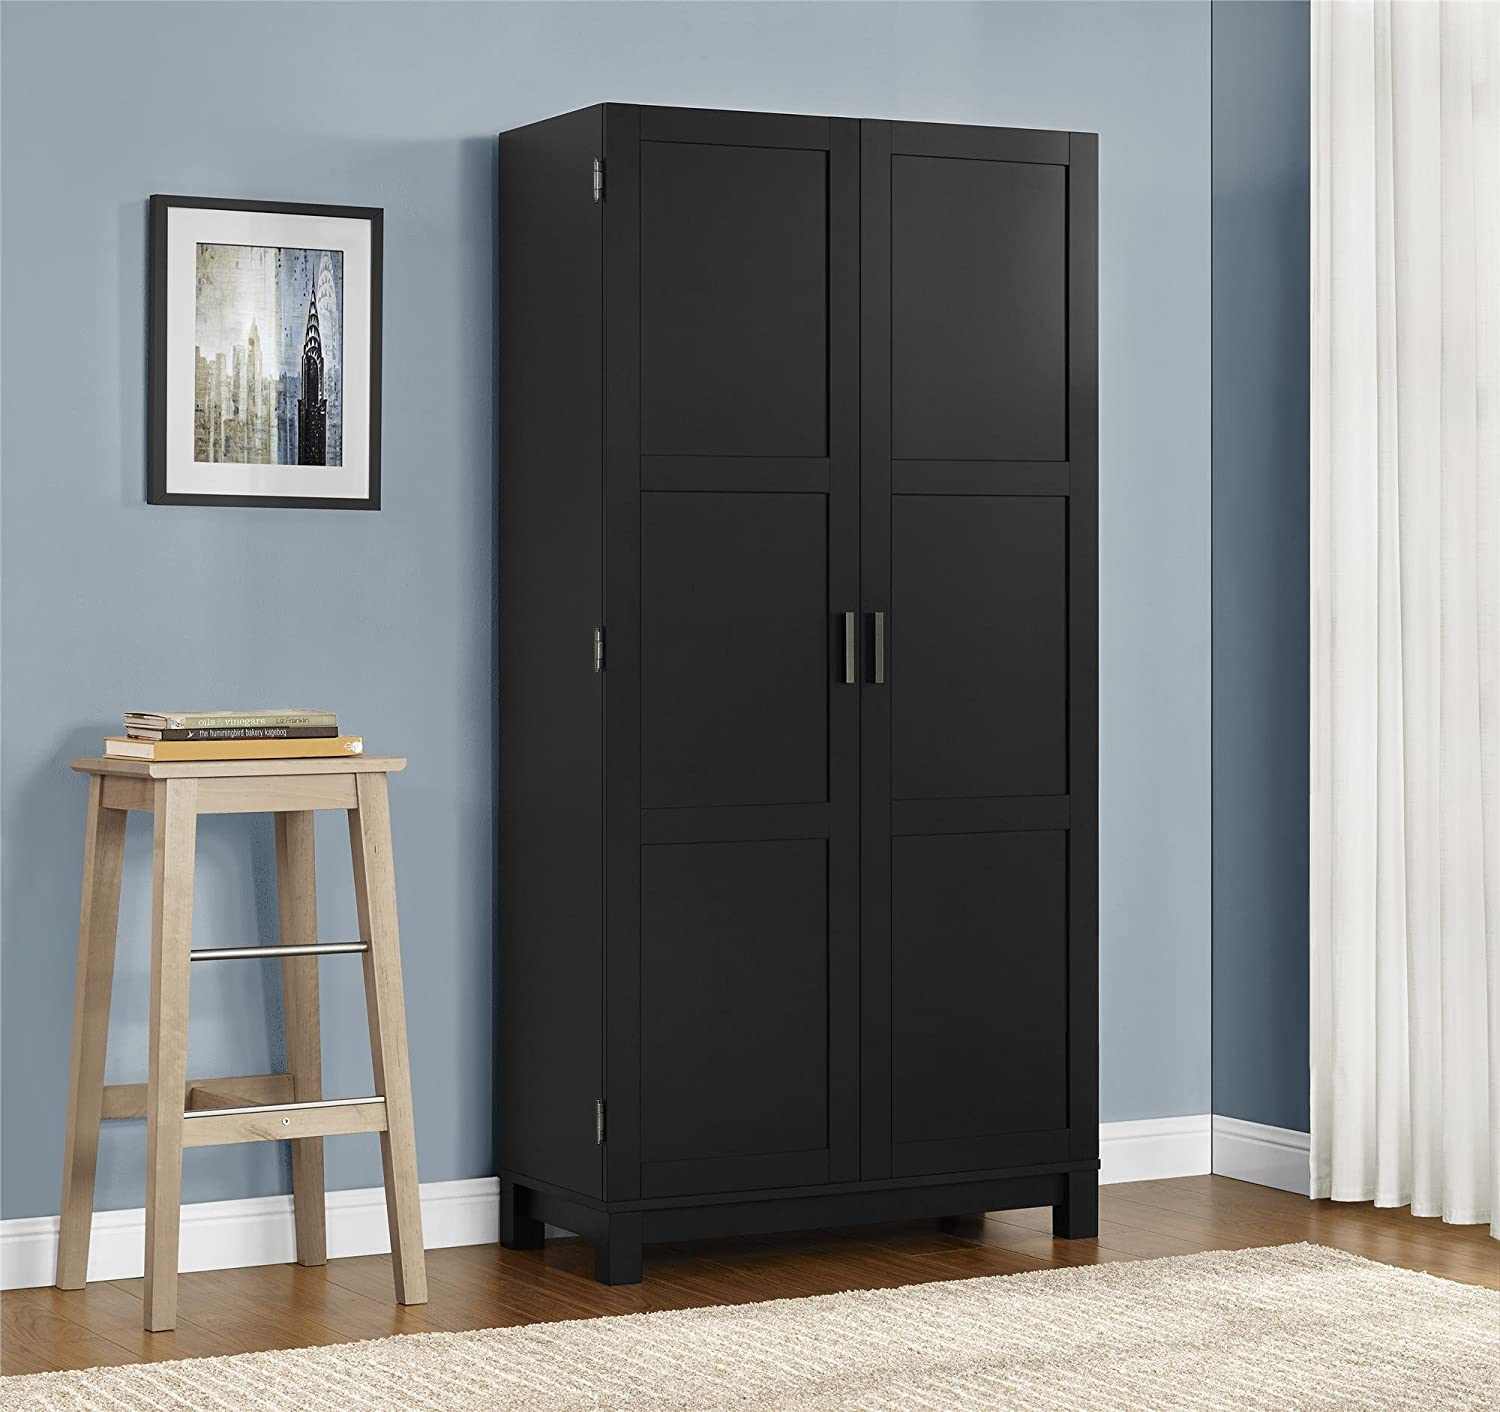 Amazon com ameriwood home carver 64 storage cabinet black kitchen dining